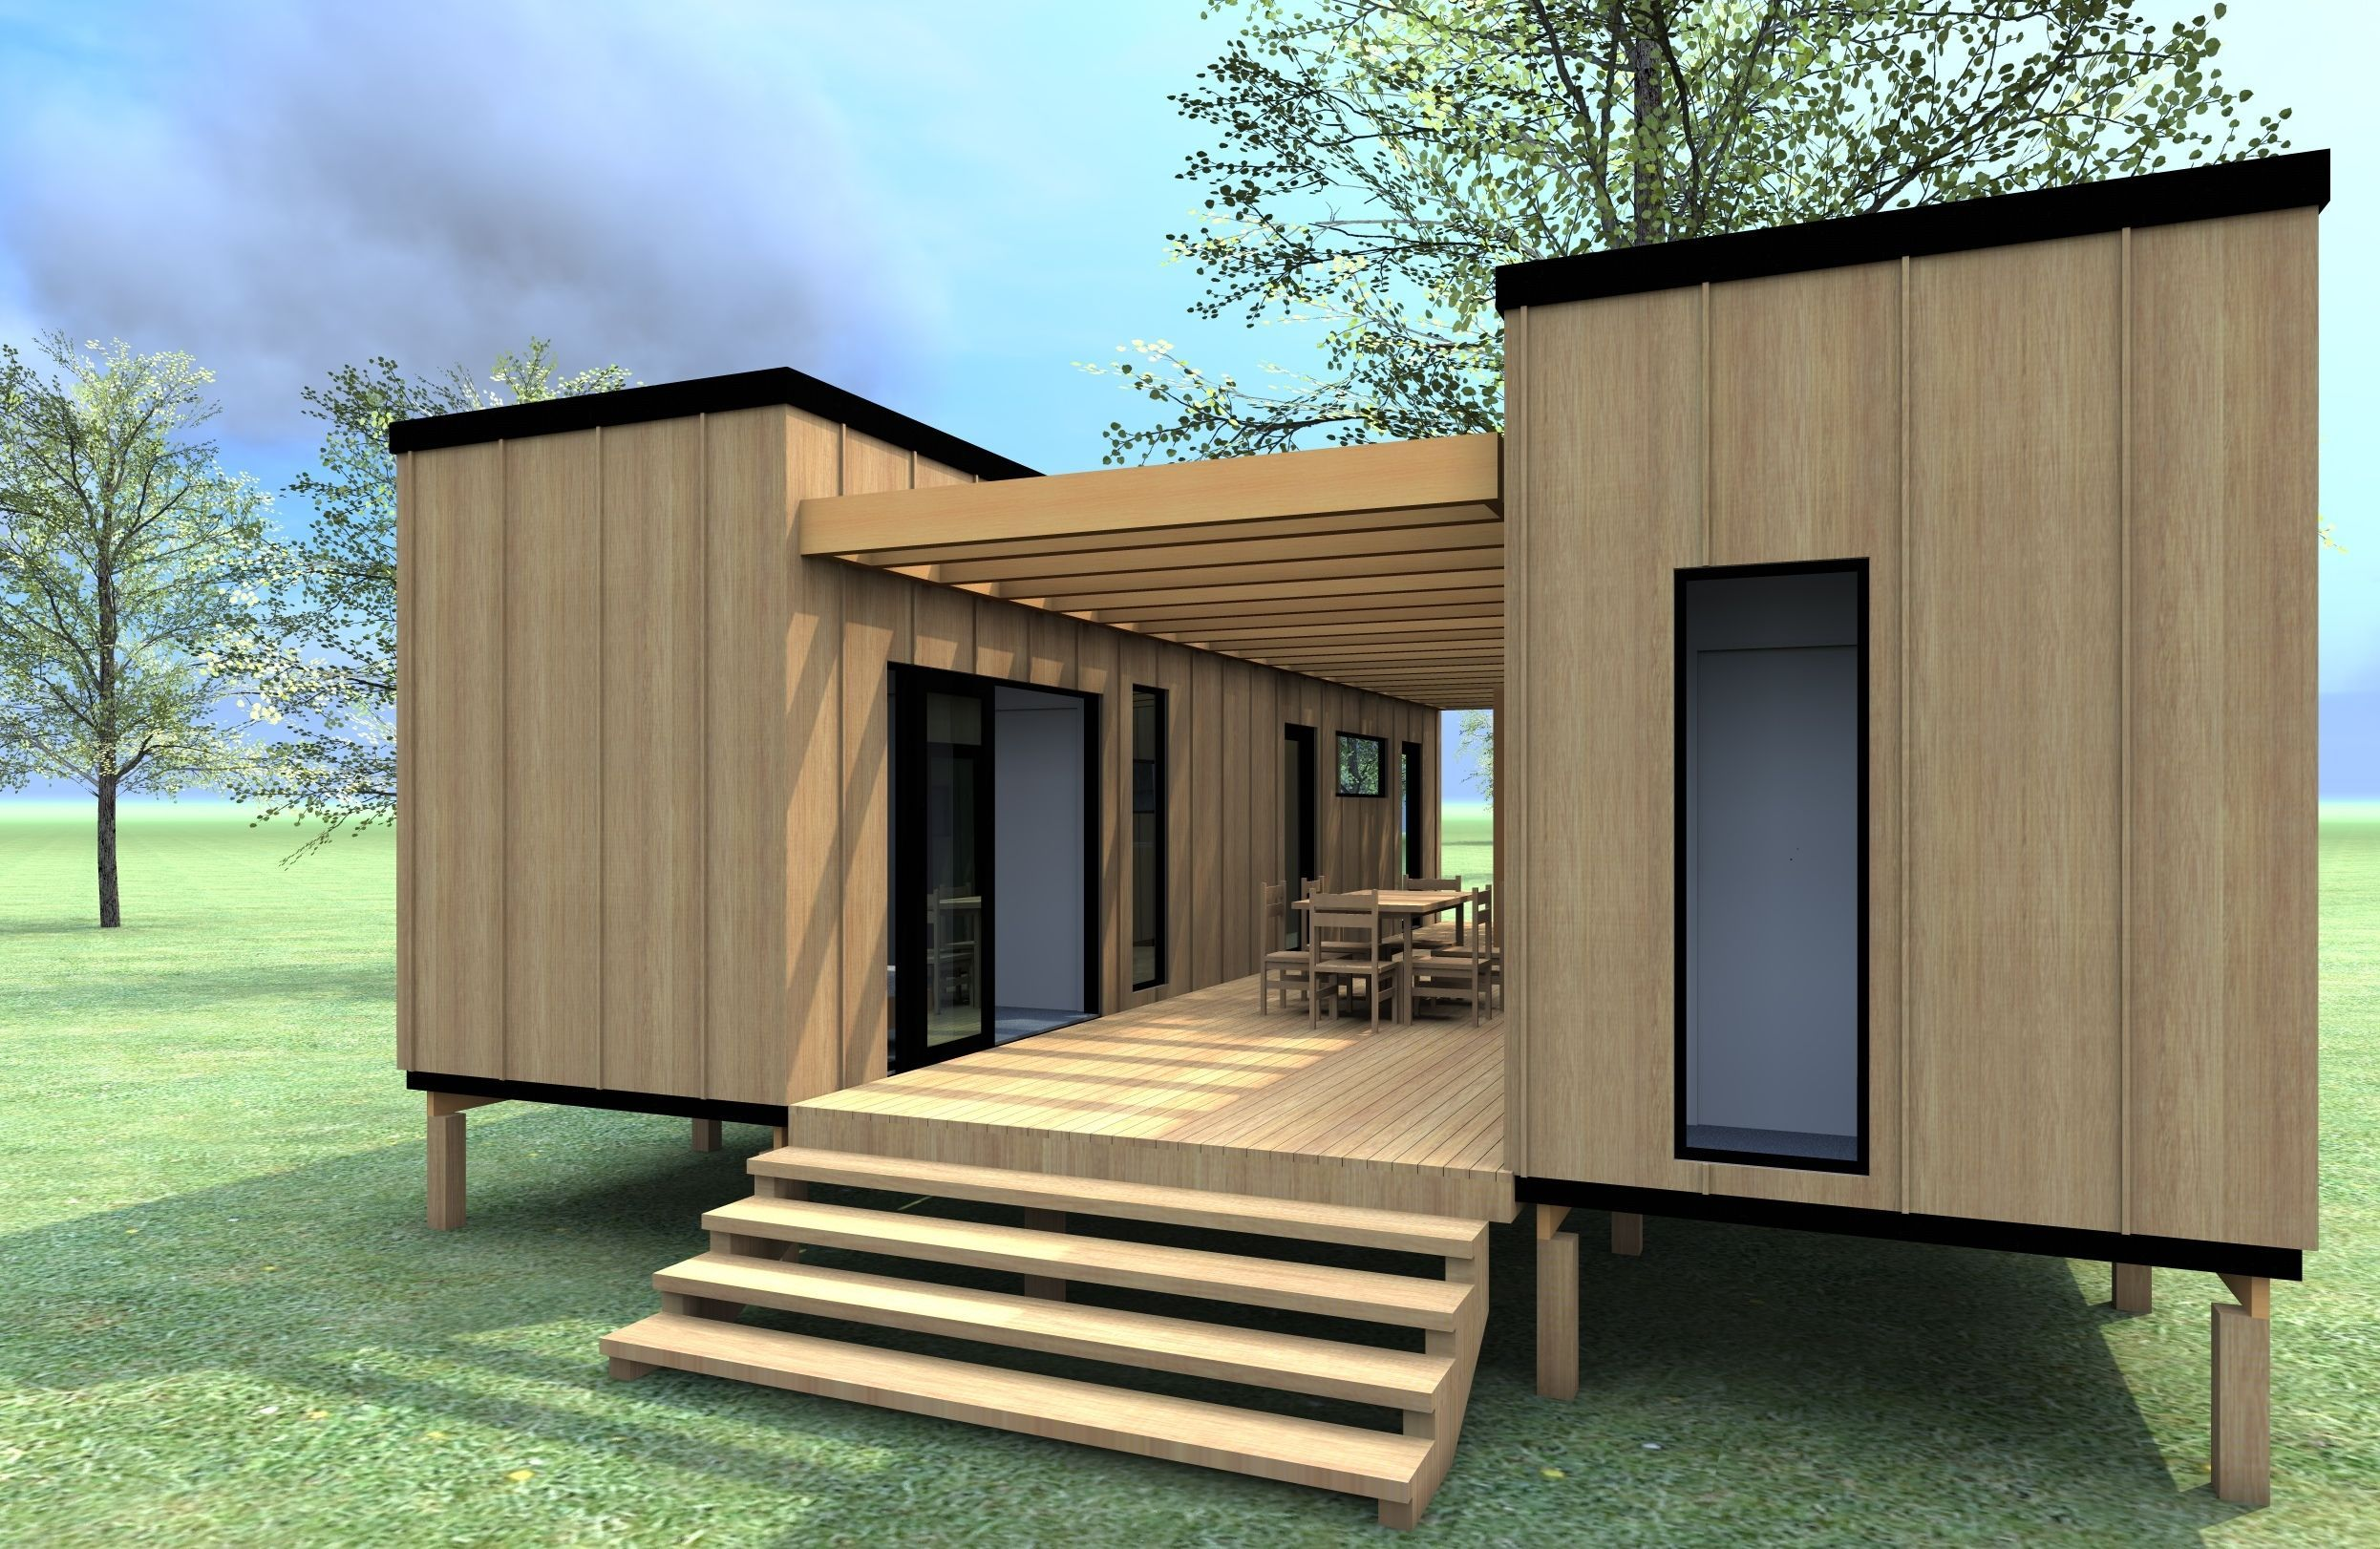 Best Kitchen Gallery: Elegant Shipping Container Homes For Sale Australia To Design Your of Where To Buy Shipping Containers For Homes  on rachelxblog.com